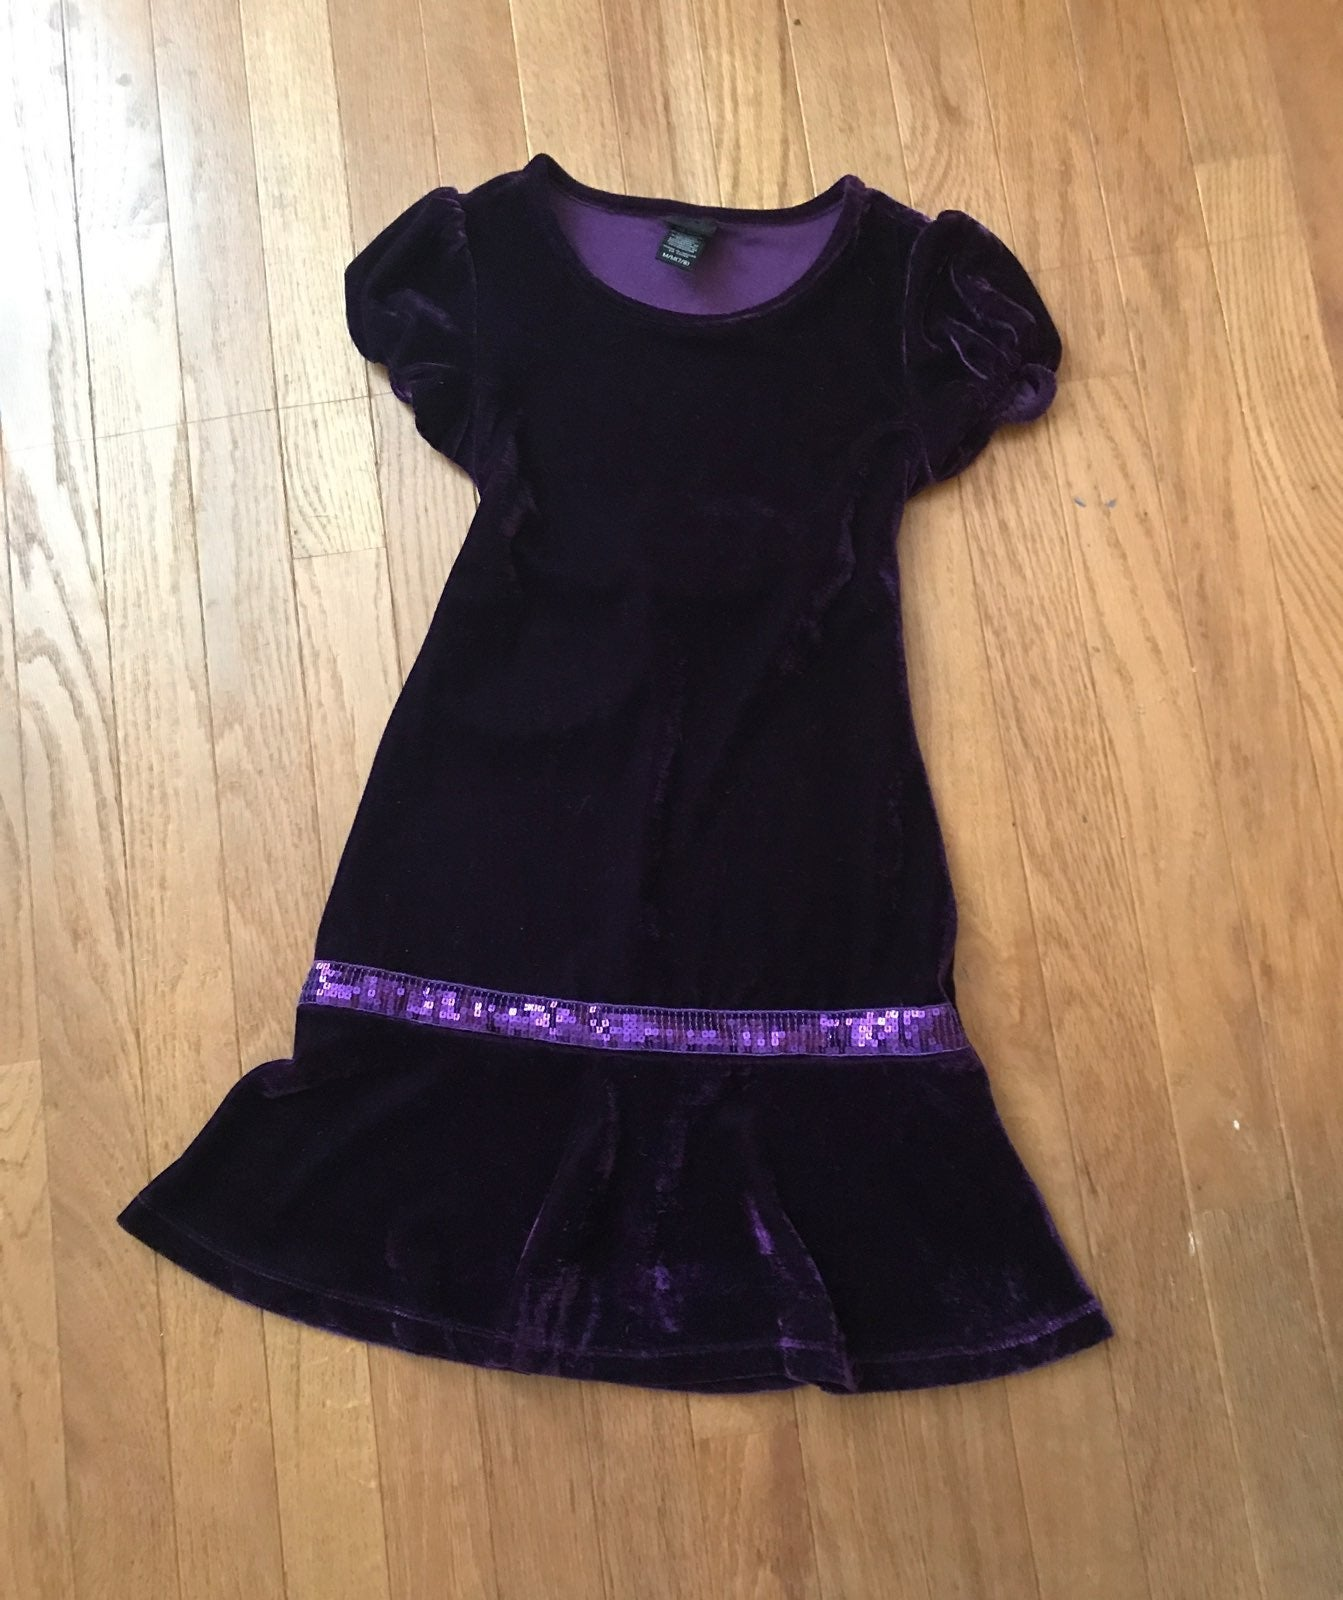 Girls' Purple velvet dress size 7/8